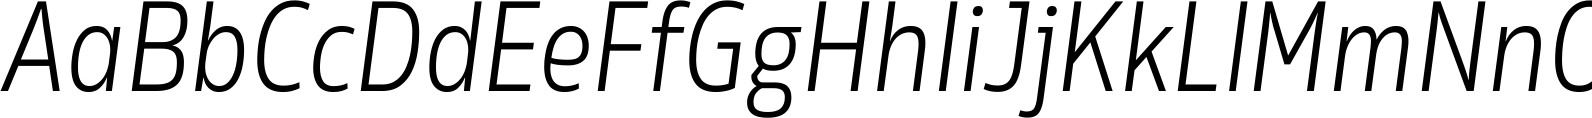 Rleud Narrow Light Italic Font